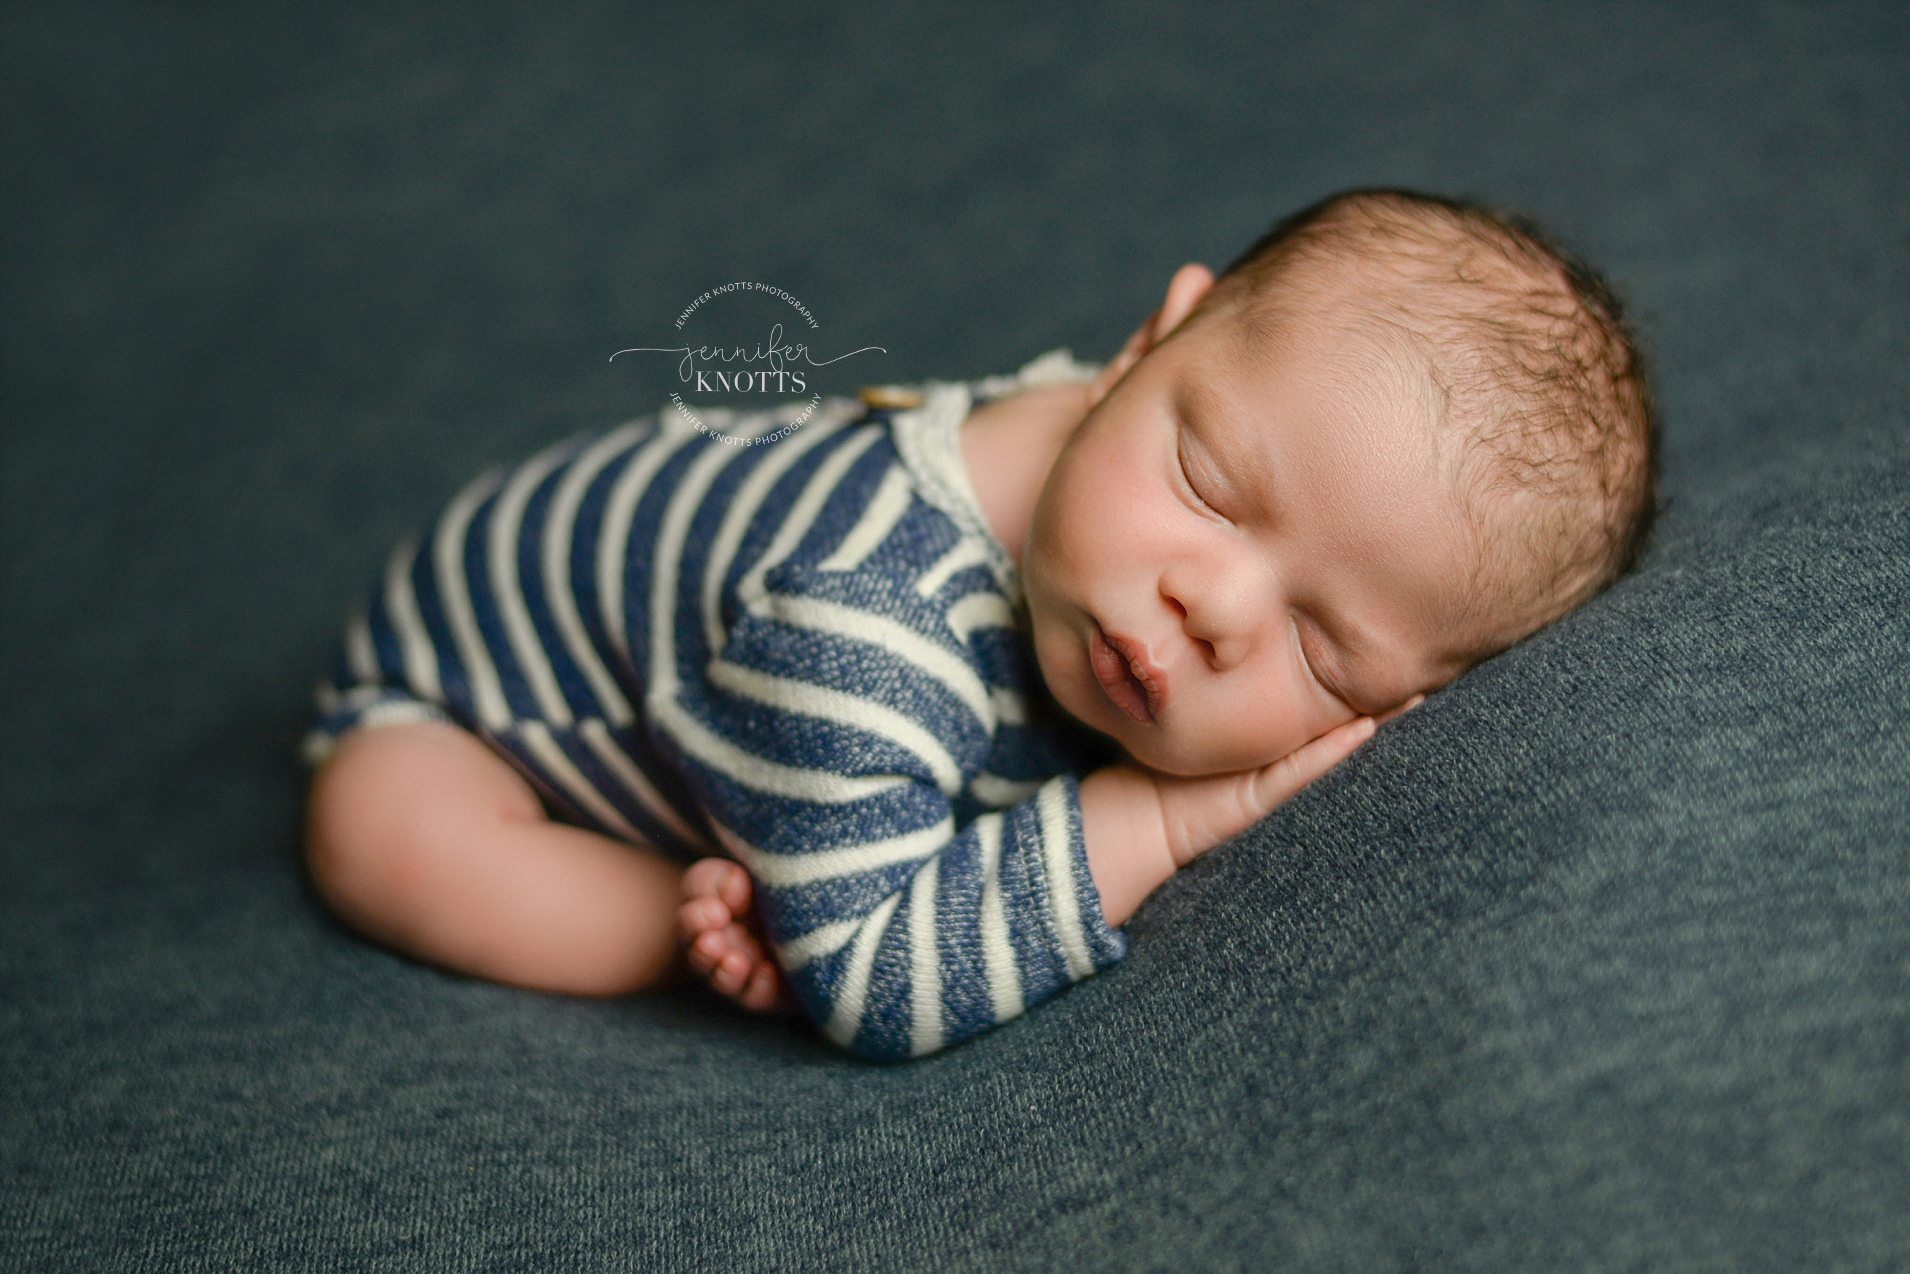 newborn boy sleeps on blue fabric while wearing striped blue outfit